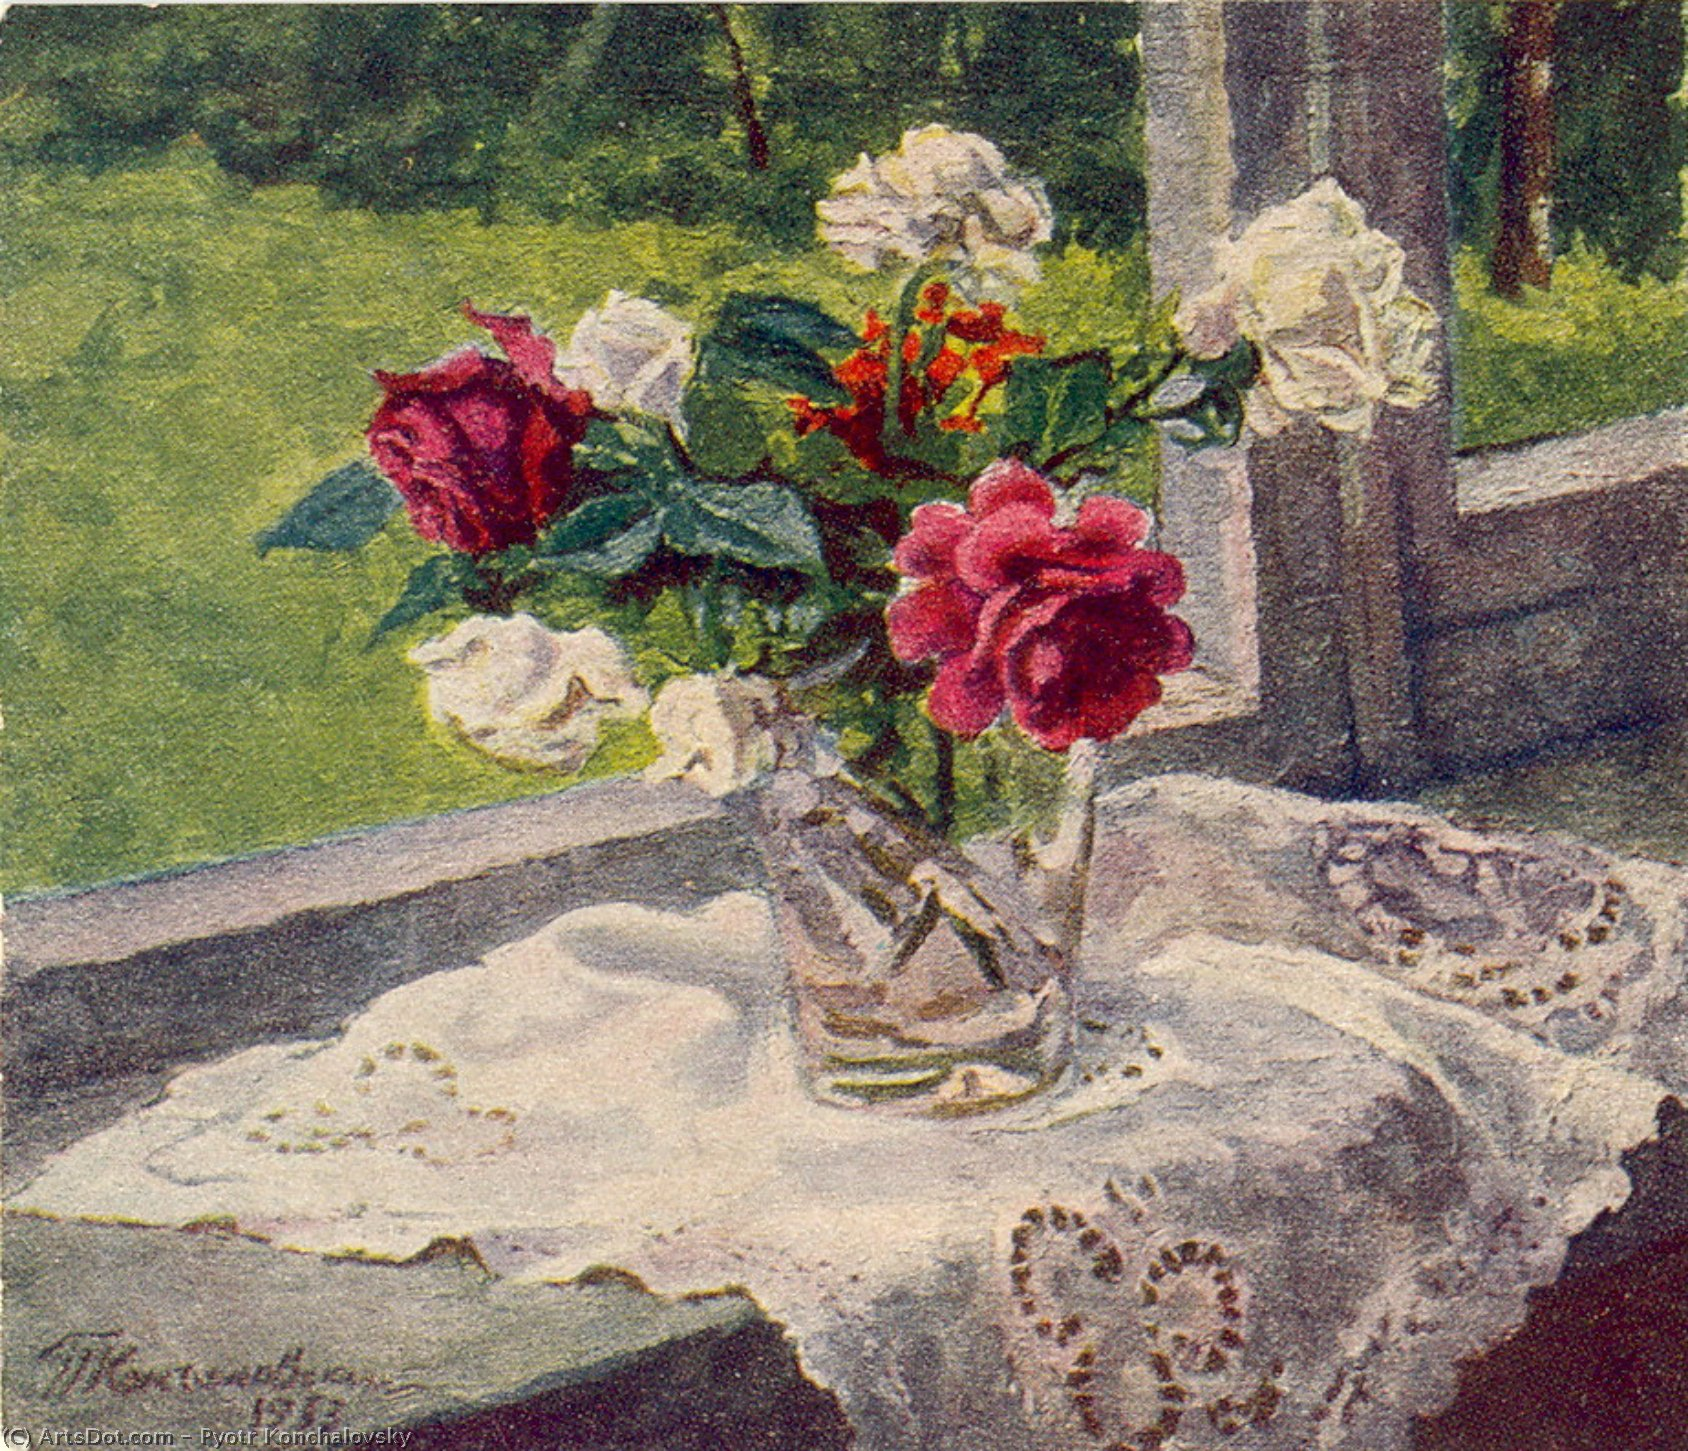 The roses by the window, 1953 by Pyotr Konchalovsky (1876-1956, Russia)